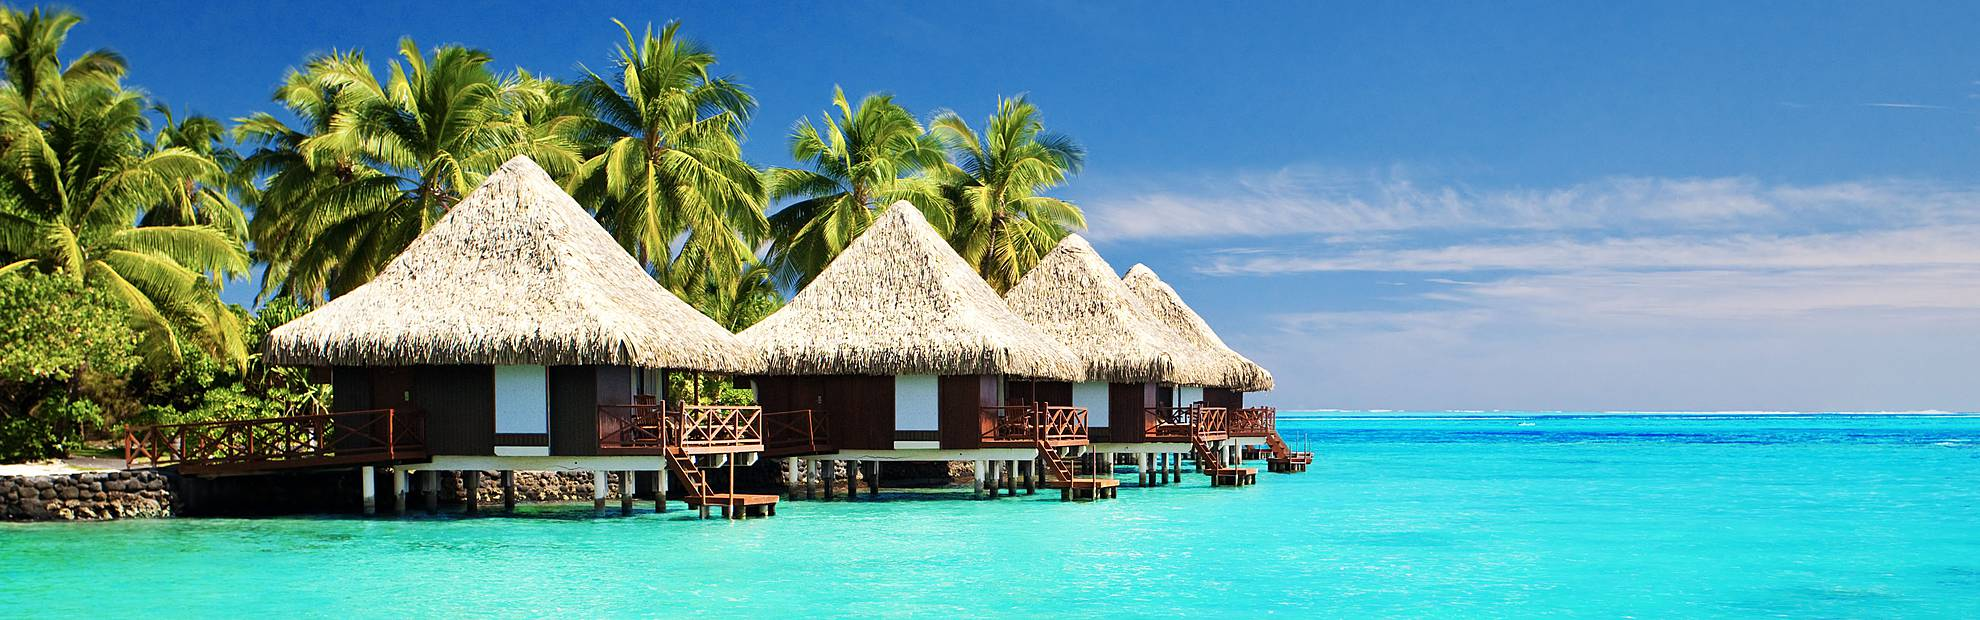 The Maldives Holidays